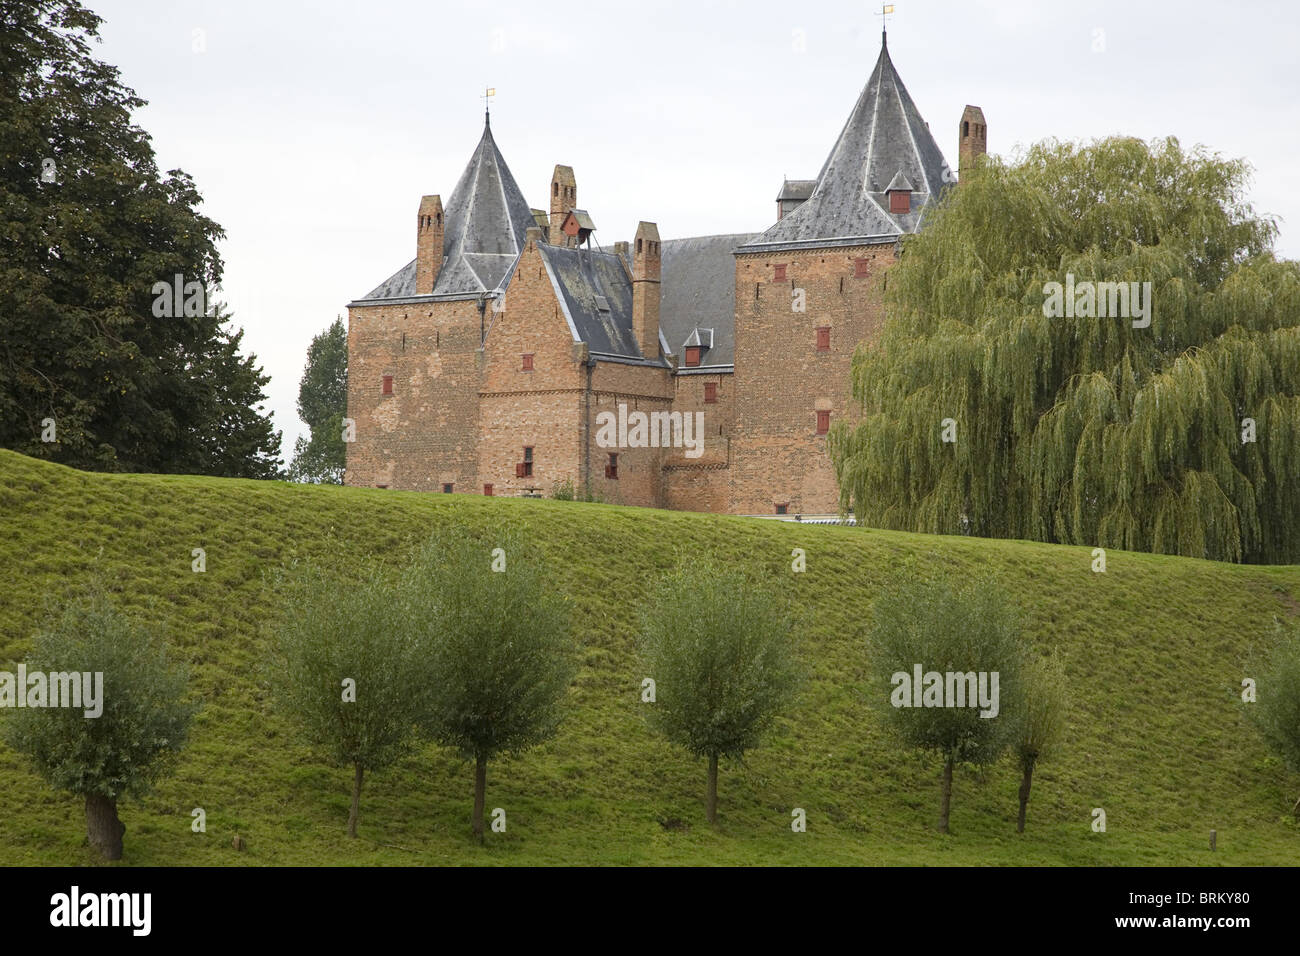 'Slot Loevestein, a castle that plays an important role in the history of Holland - Stock Image